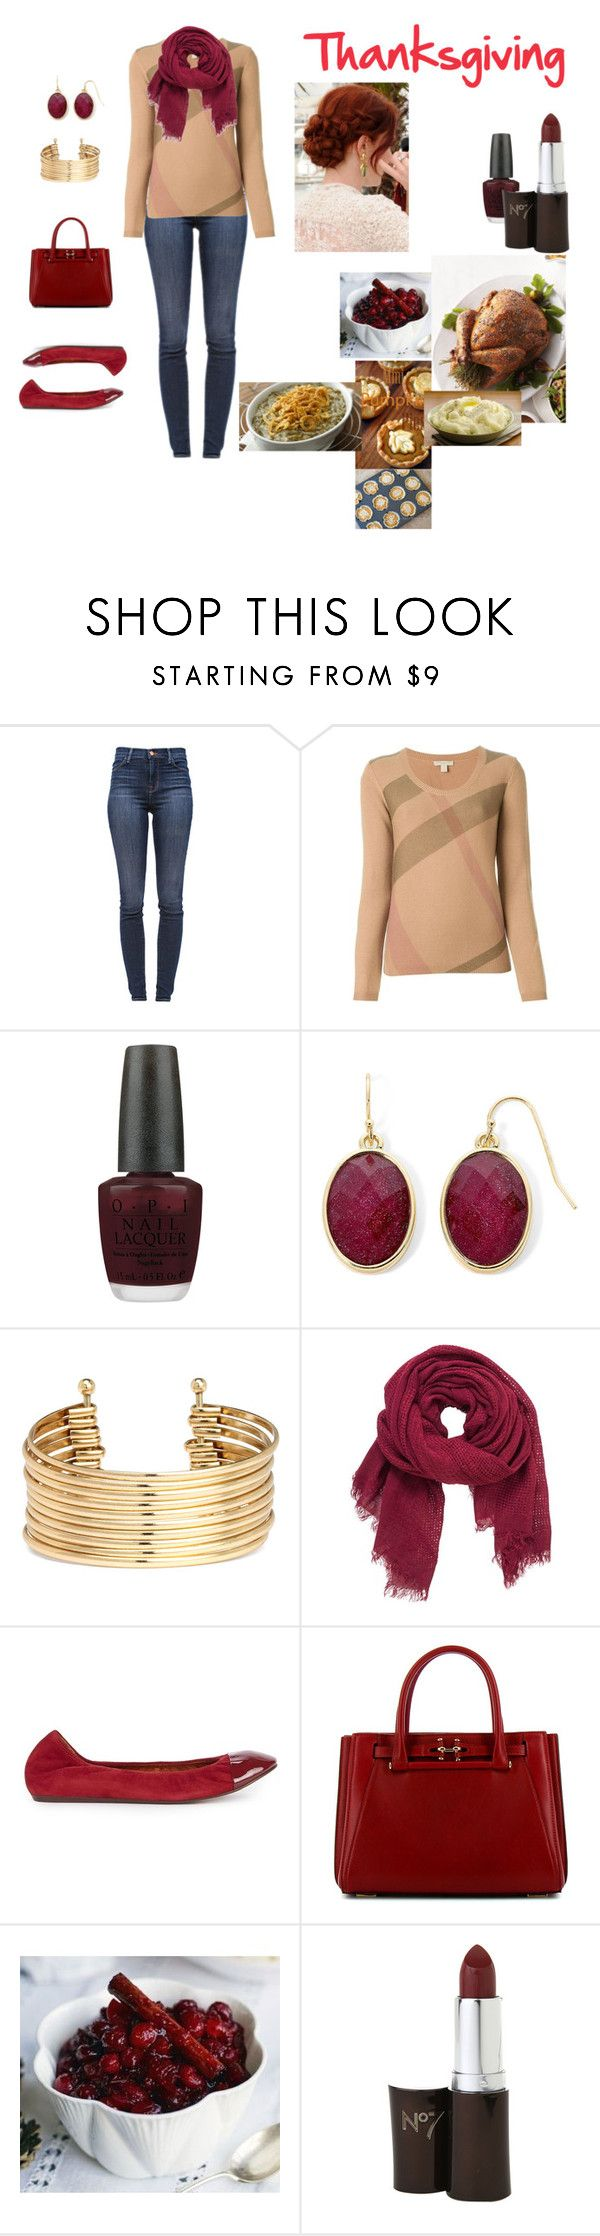 Violet on Thanksgiving by cindy-renee-miller on Polyvore featuring Burberry, J Brand, Lanvin, VBH, Liz Claiborne, H&M, maurices and OPI